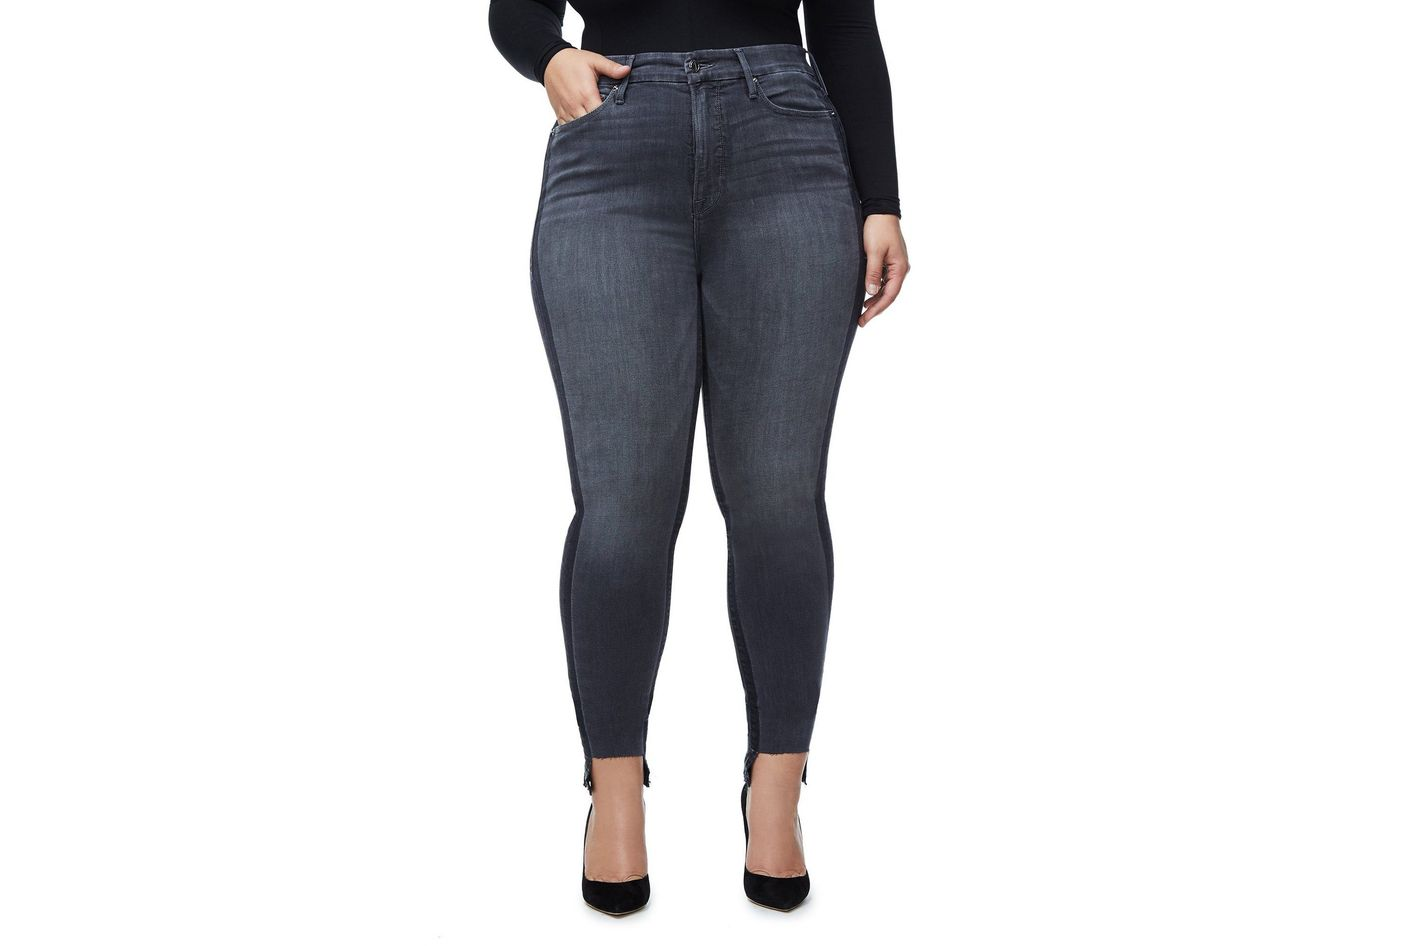 ebd89d07893b0 Best plus-size jeans for petite women. Good American Good Legs Shadow  Tunnel Hem